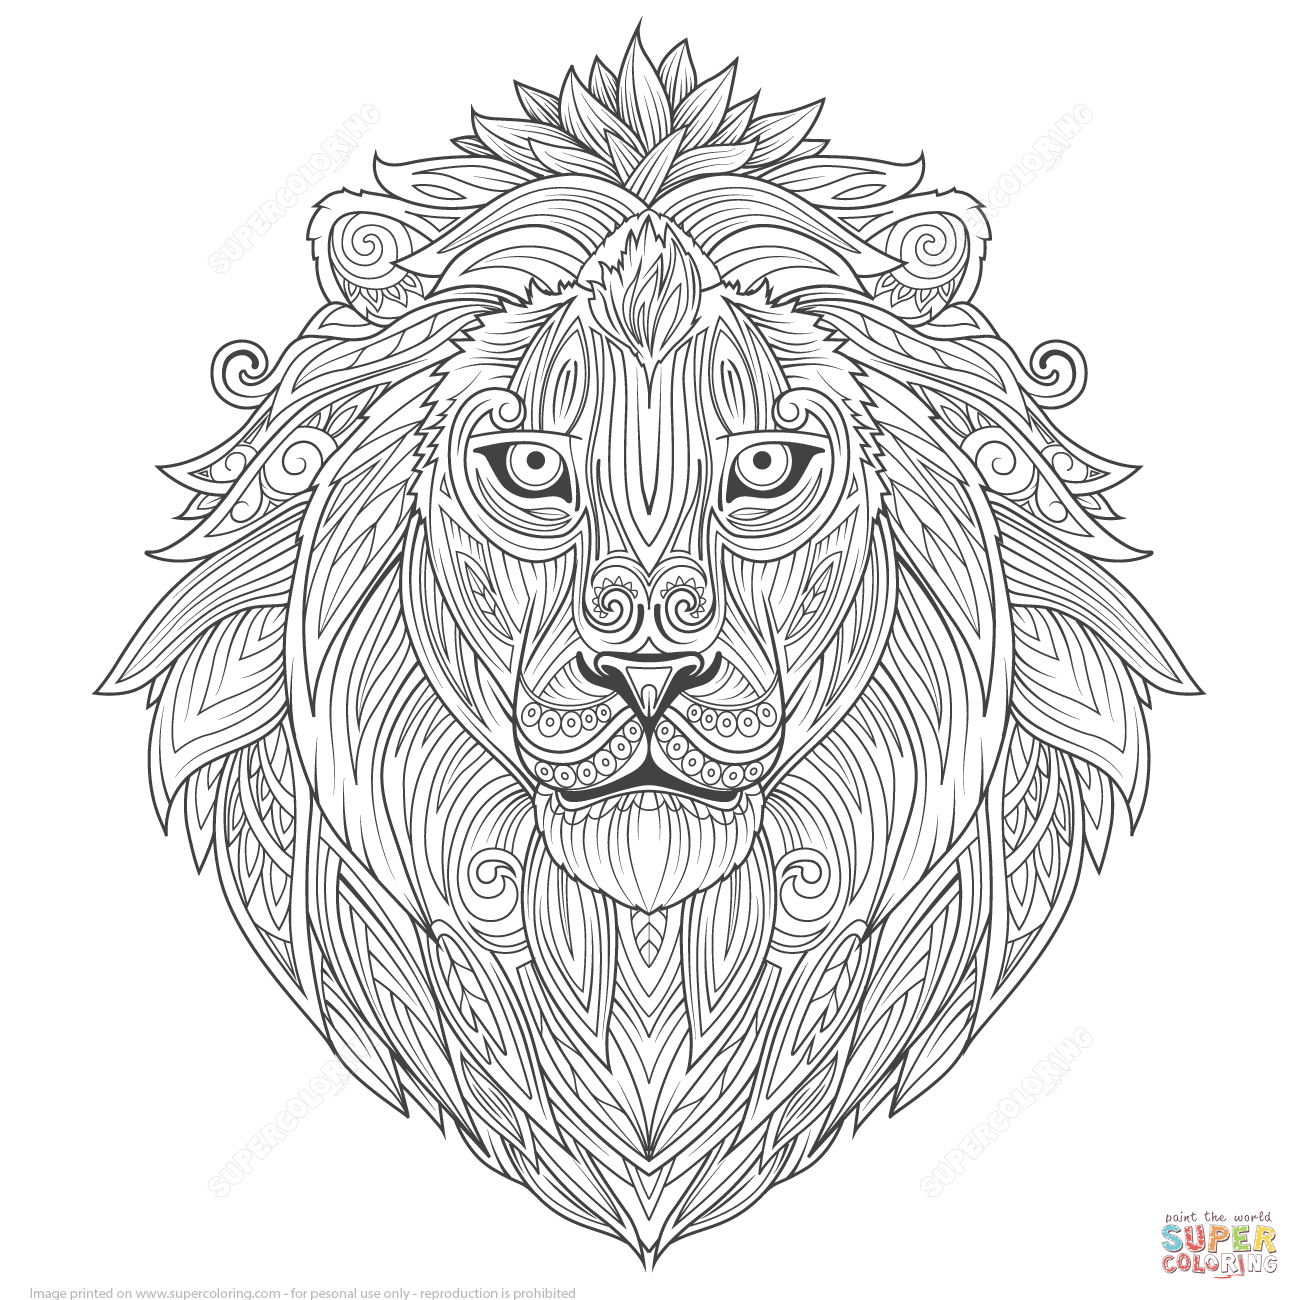 zentangle coloring pages free printable lunar patterns zentangle adult coloring pages zentangle printable free pages coloring